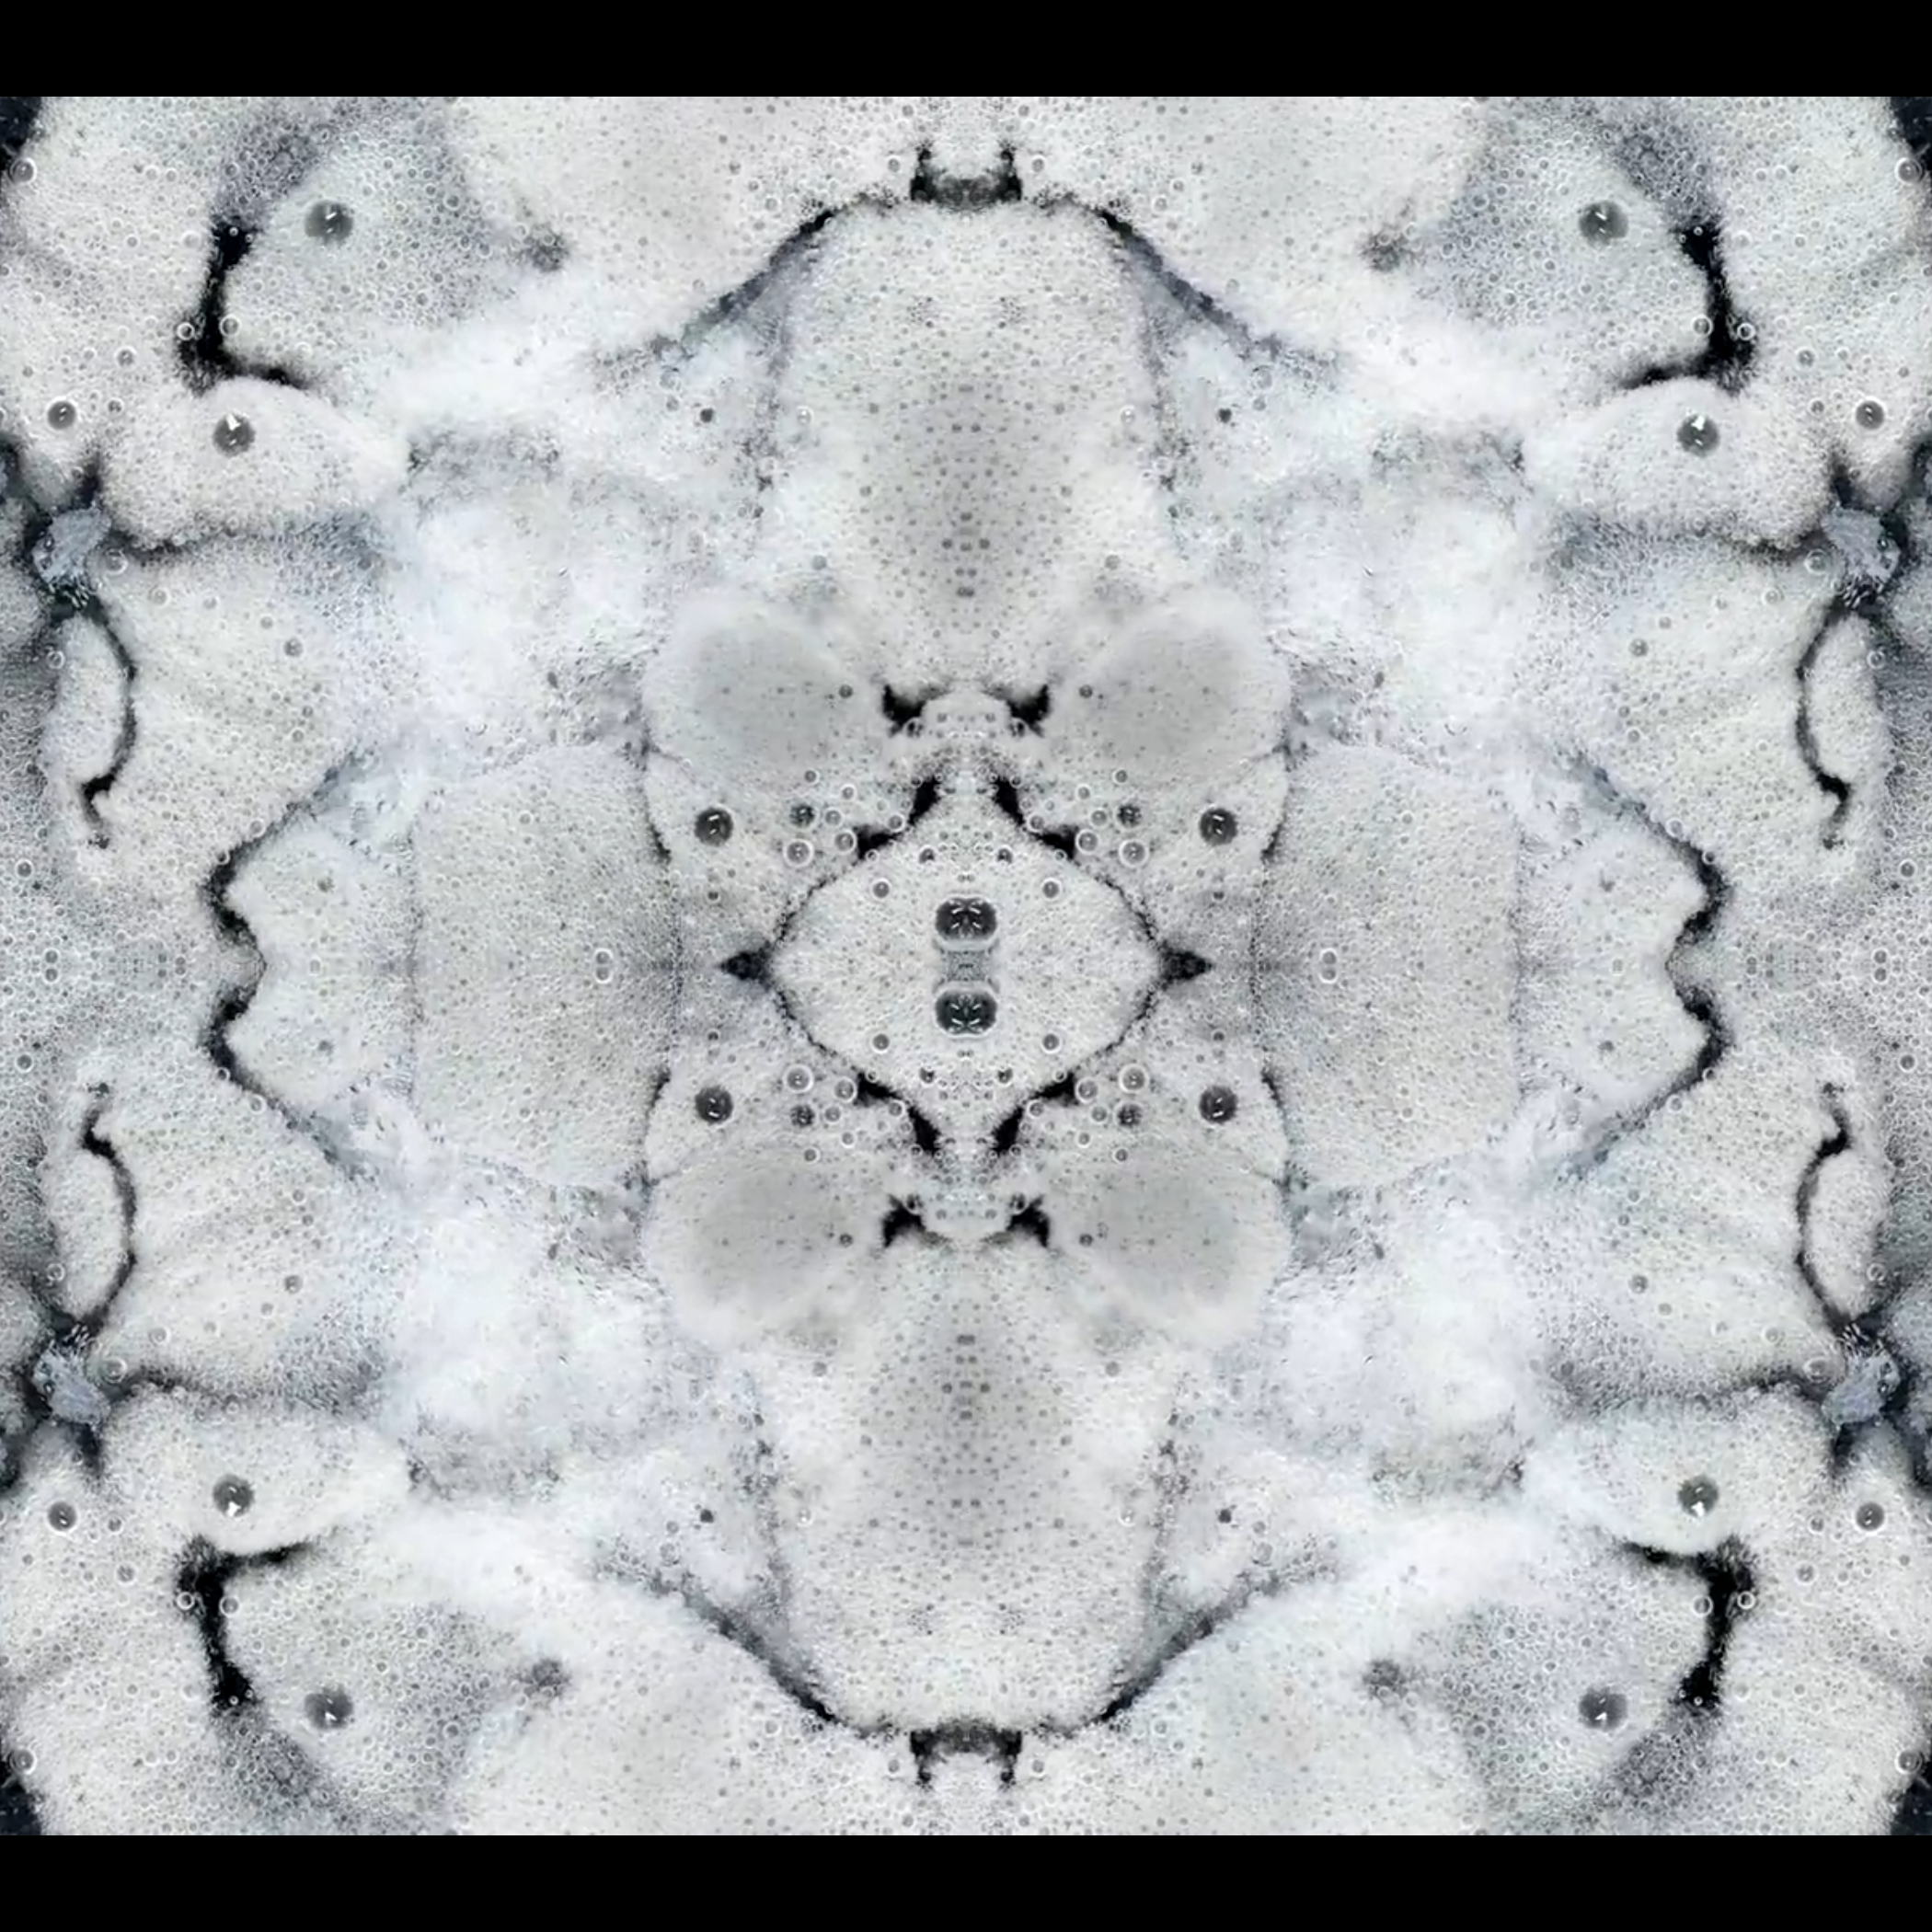 DROP – an audiovisual experiment using purely organic materials